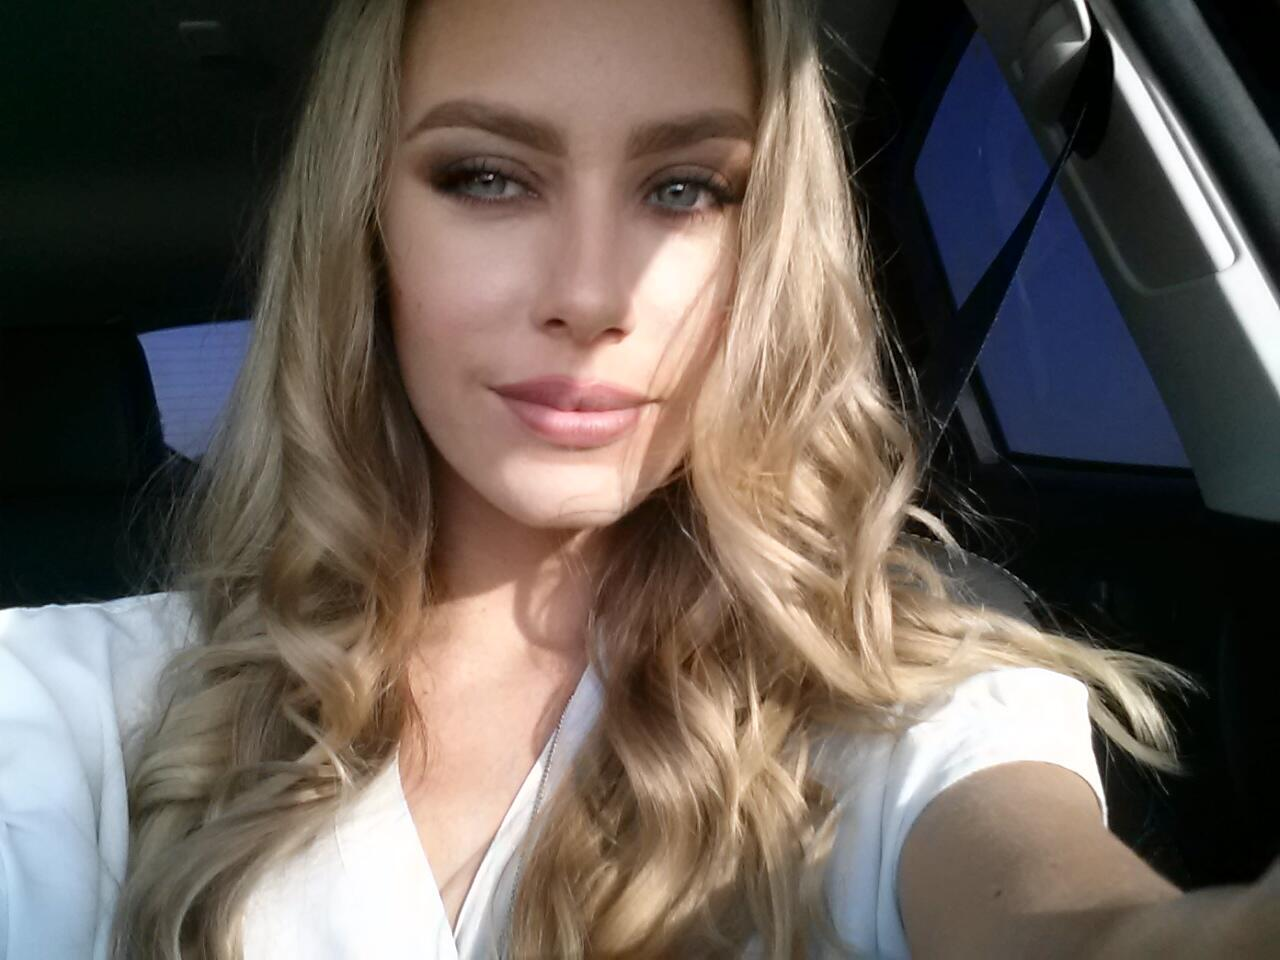 RT @XNicoleAnistonX: Driving to Hollywood :-) http://t.co/B5X0brfFOB